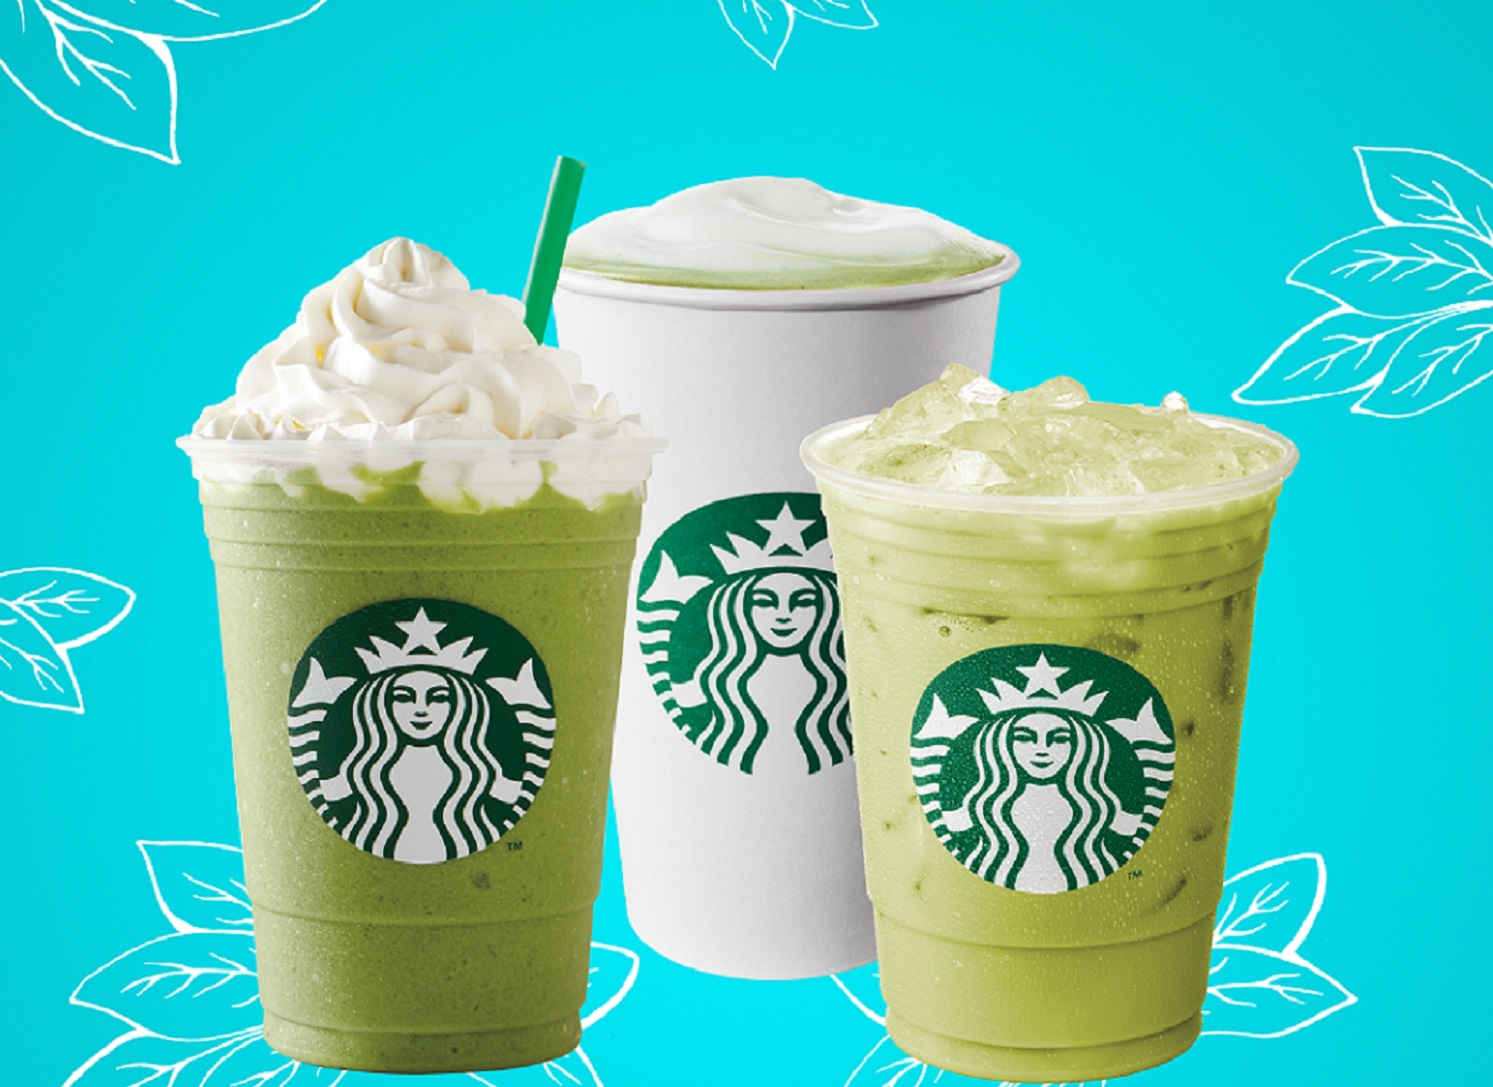 Starbucks Launches New Spring Products Starbucks Stories